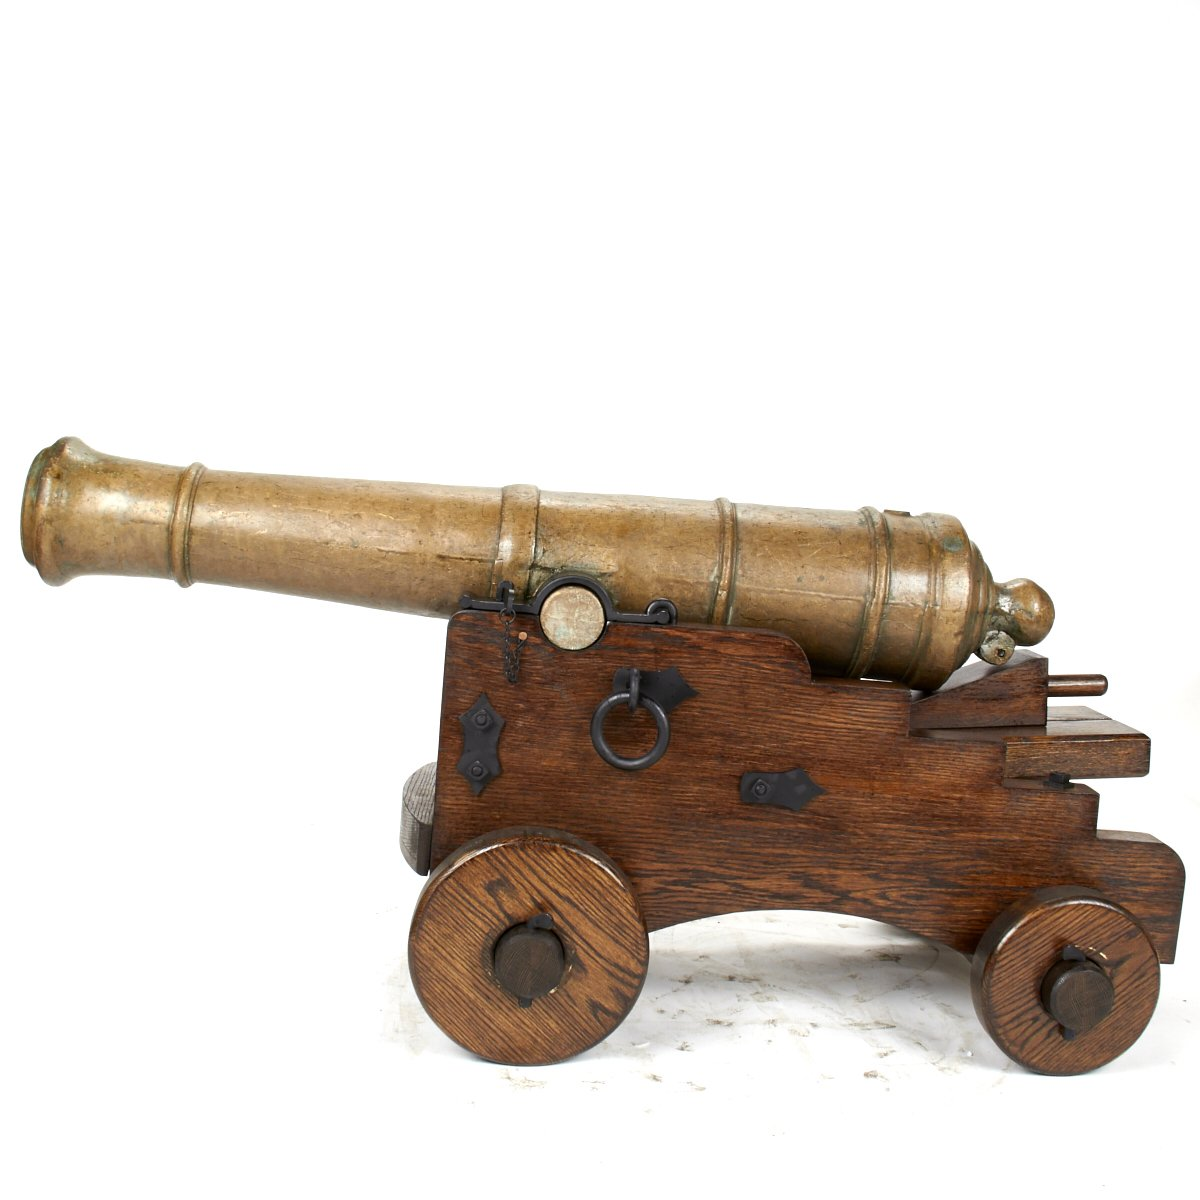 original 18th century 6 pounder saker bronze cannon with oak naval